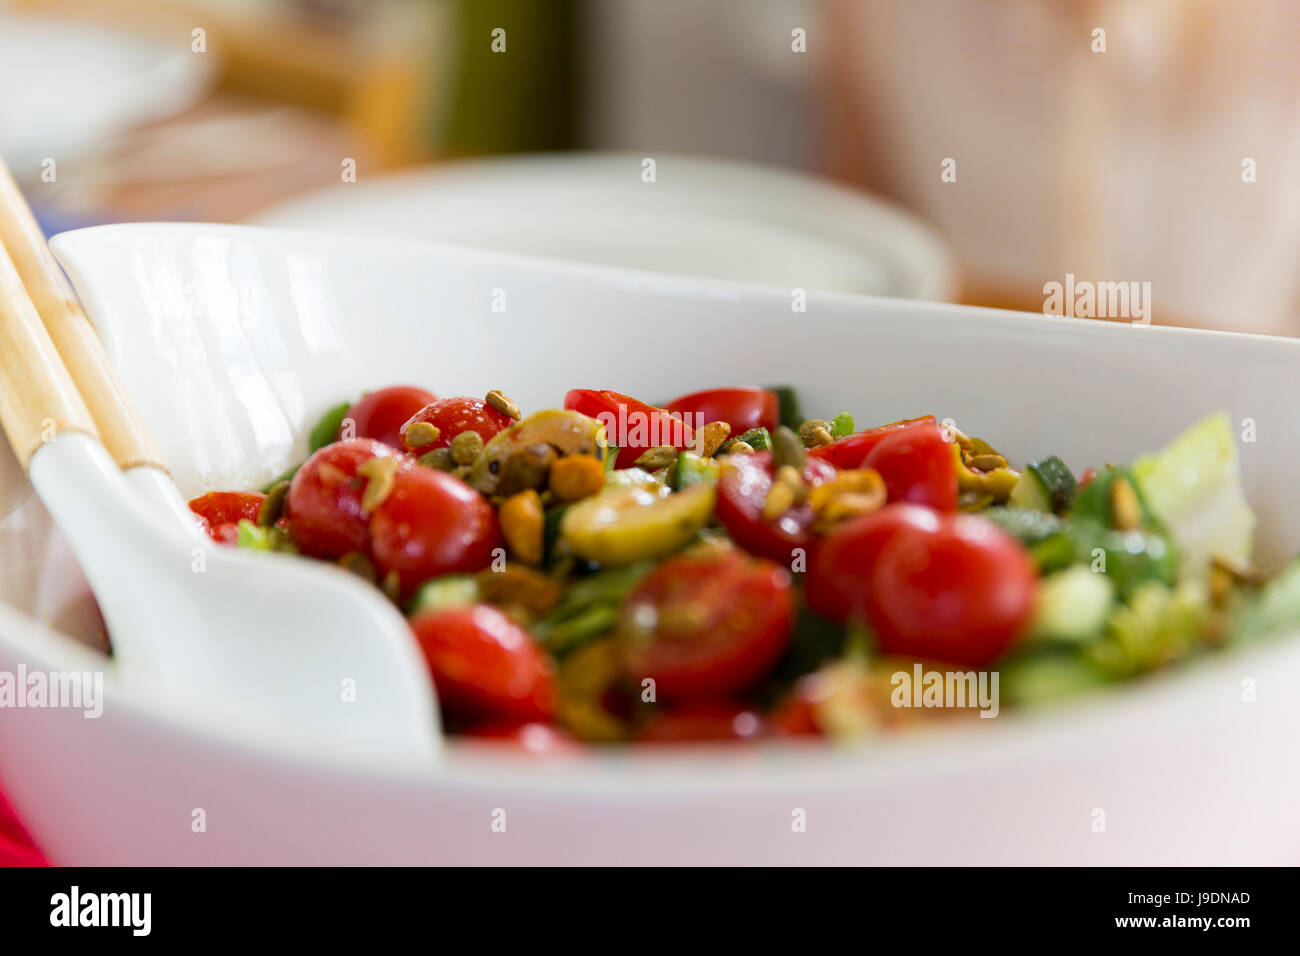 Food served in a bowl. - Stock Image